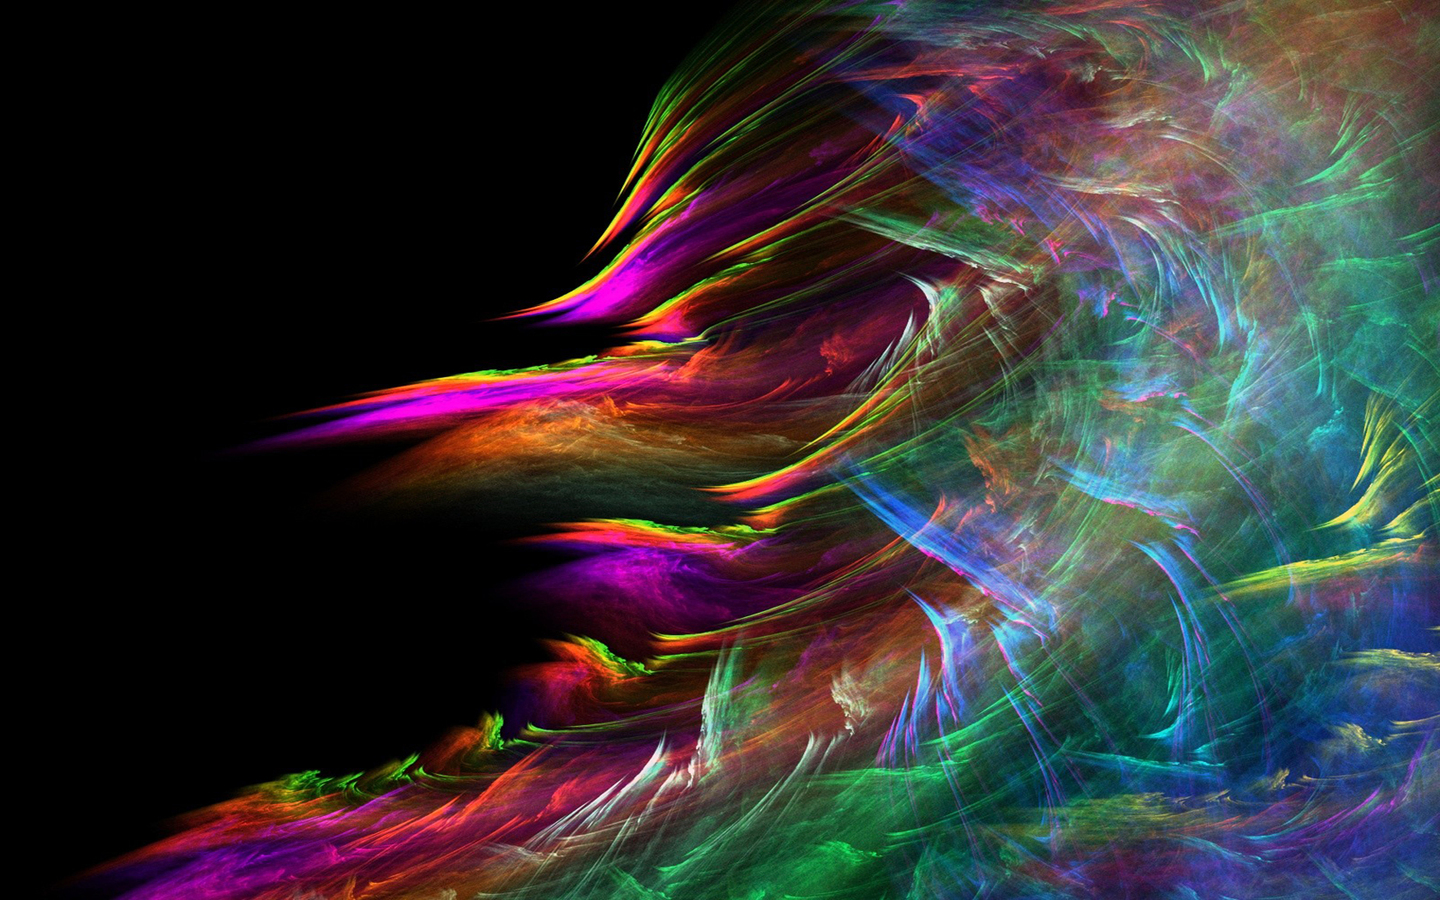 colorful-abstract-desktop-backgrounds-hd-wallpapers | desktop